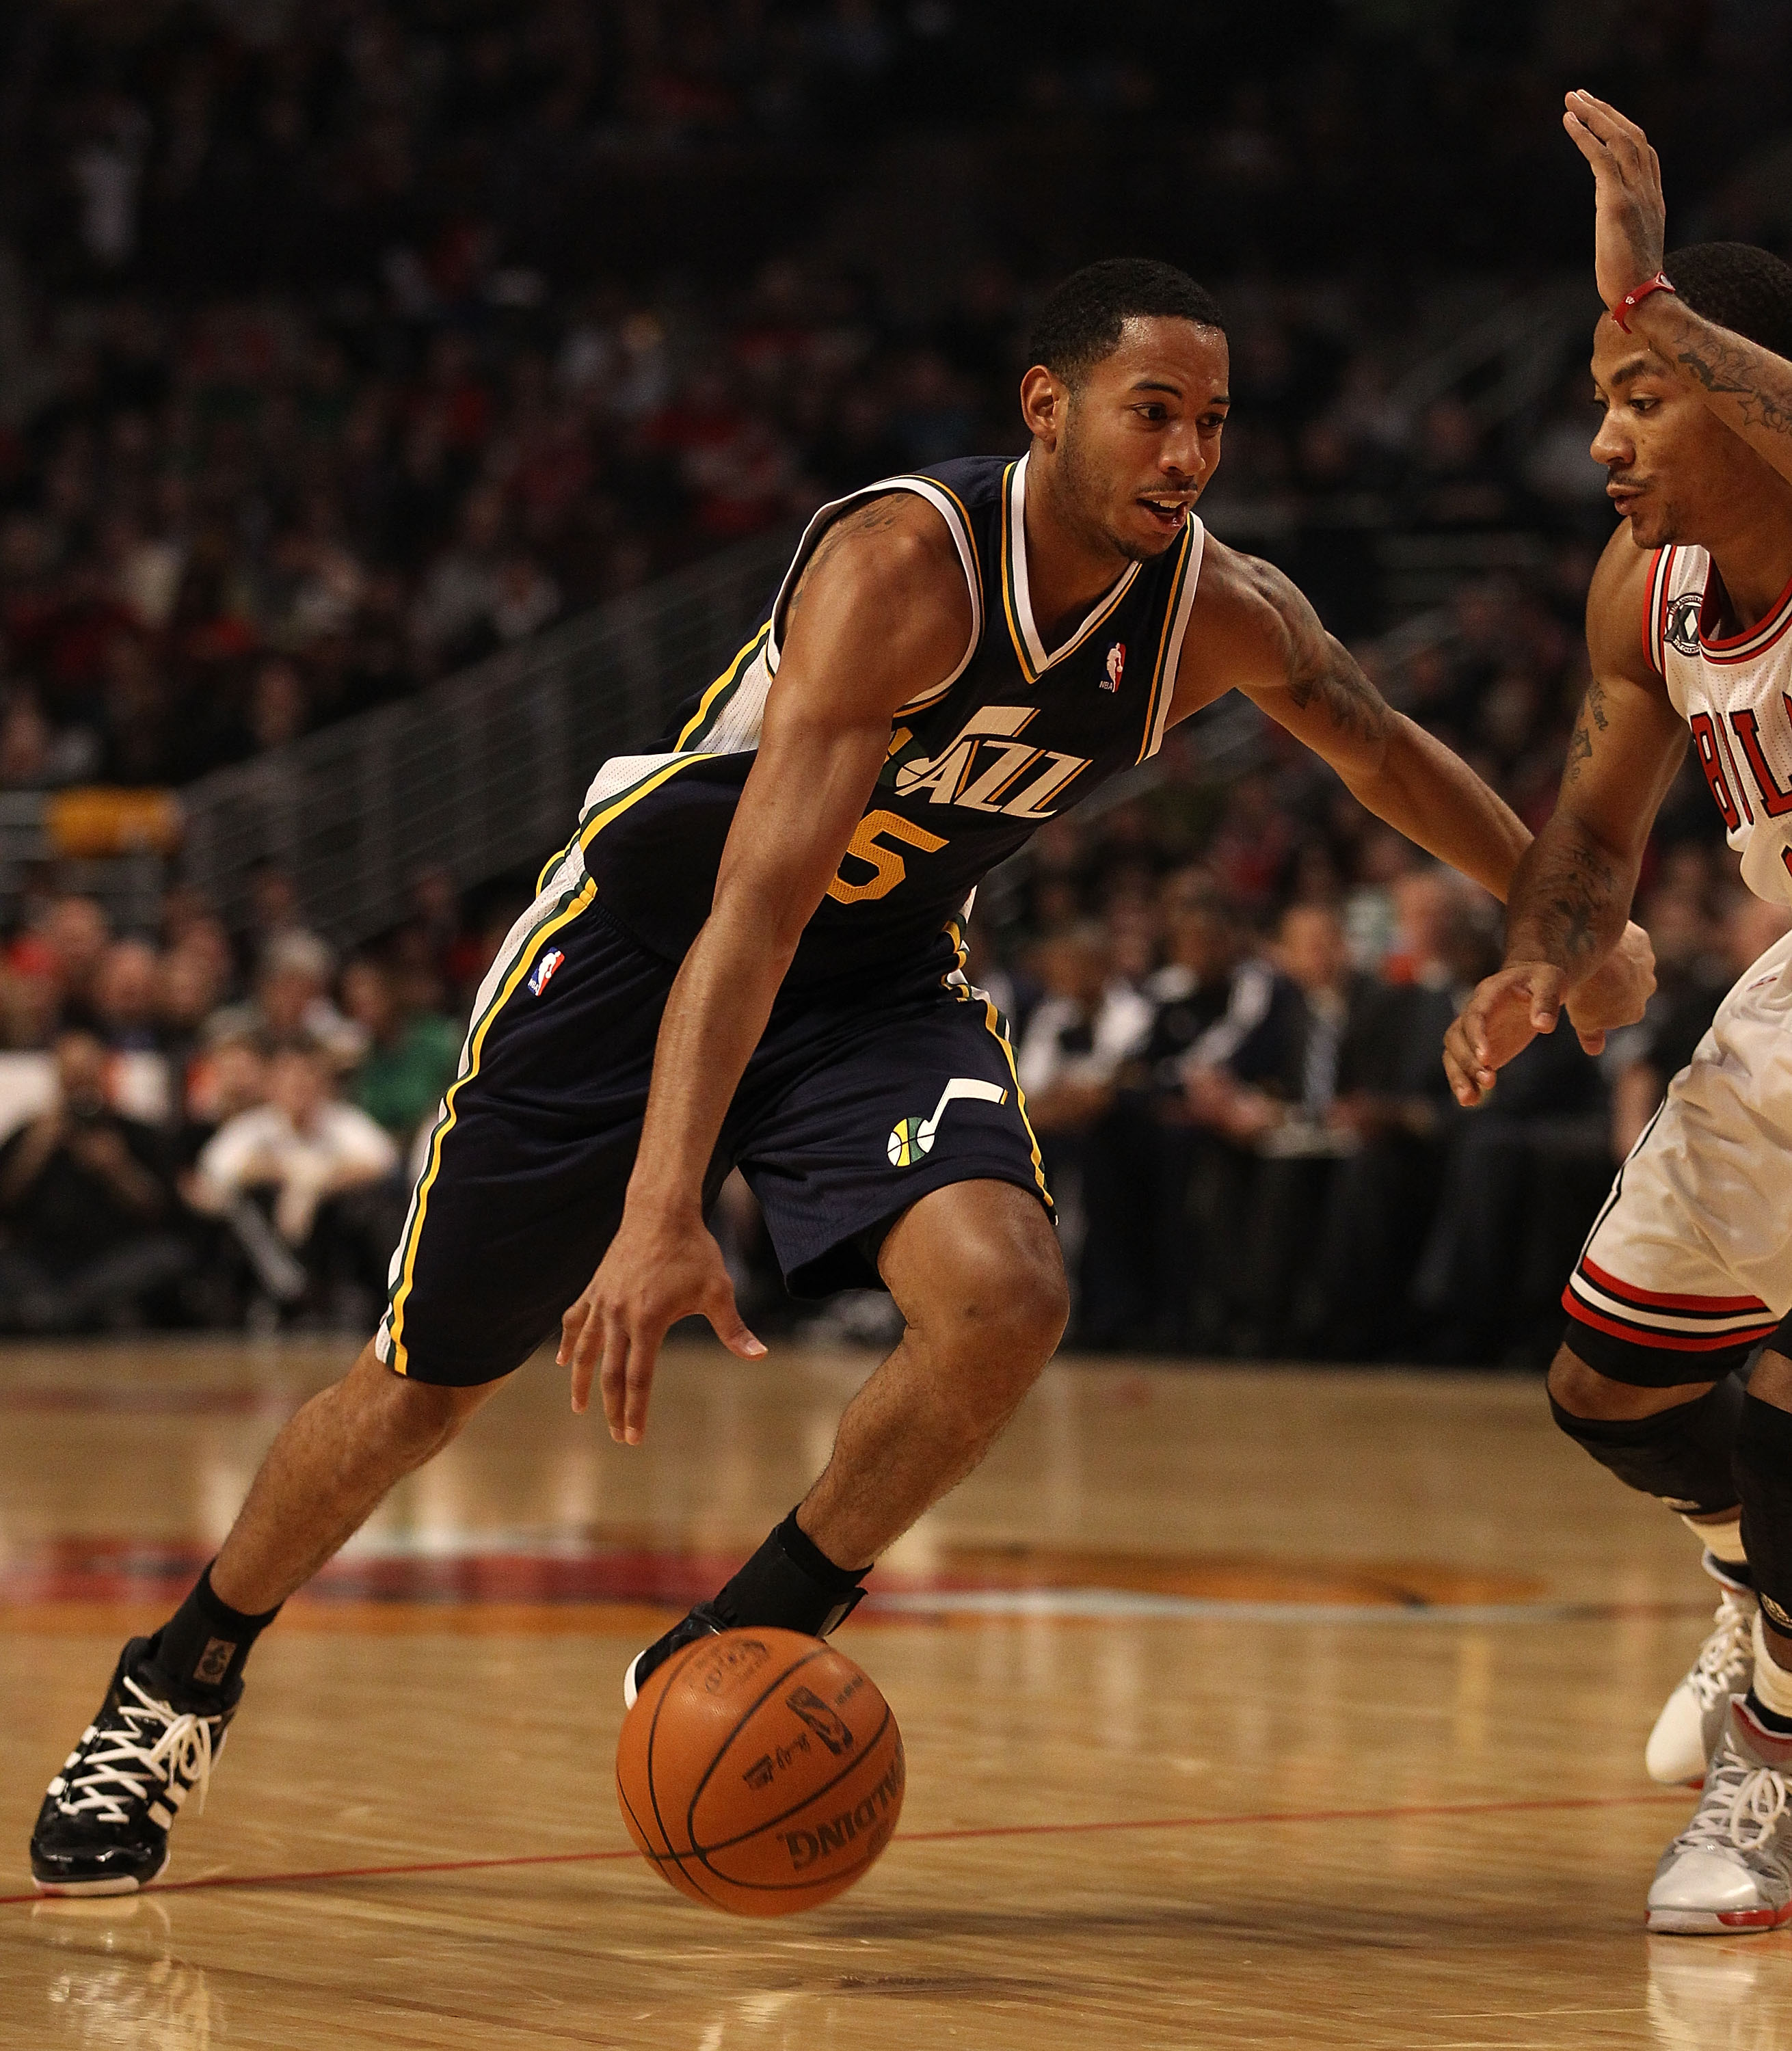 CHICAGO, IL - MARCH 12: Devin Harris #5 of the Utah Jazz drives against Derrick Rose #1 of the Chicago Bulls at the United Center on March 12, 2011 in Chicago, Illinois. The Bulls defeated the Jazz 118-100. NOTE TO USER: User expressly acknowledges and ag